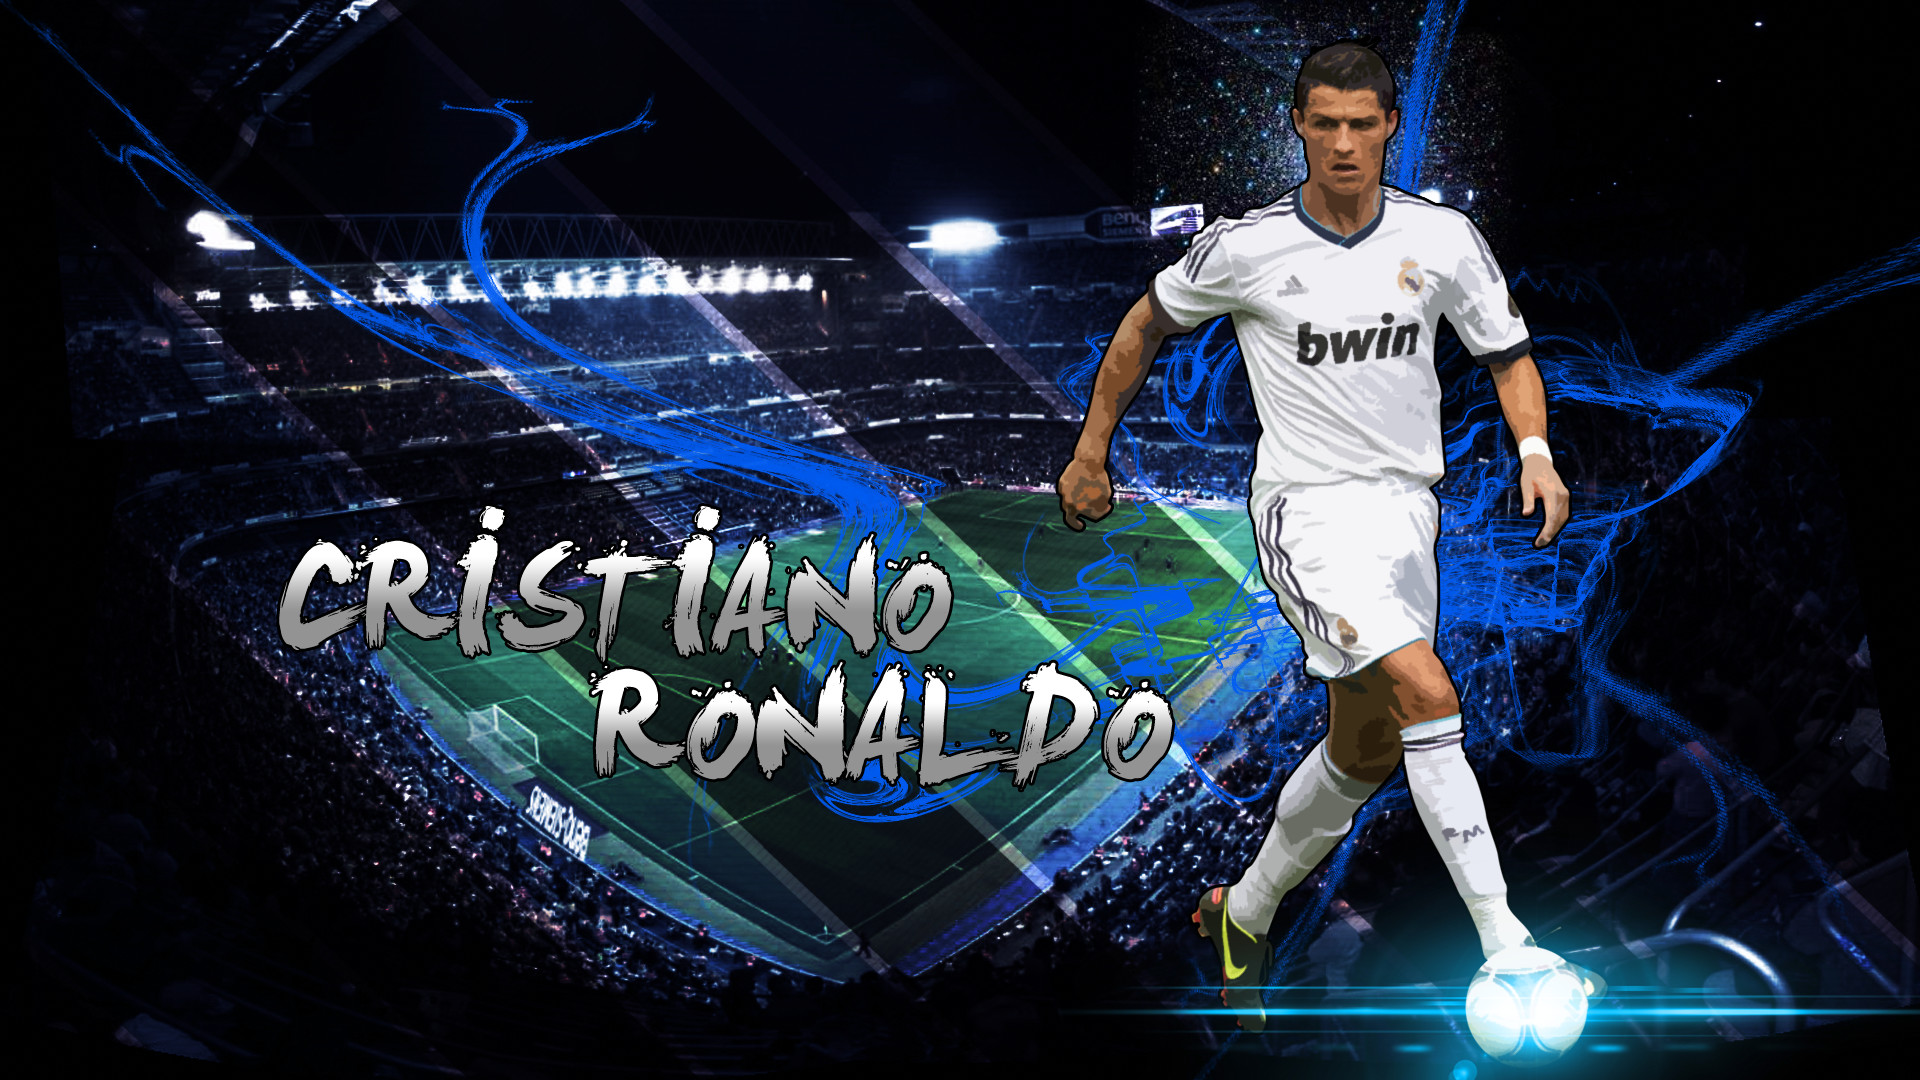 1920x1080 Cristiano Ronaldo, Cr7, Football Player, Real Madrid, Jersey, King, Stadium  Wallpaper HD